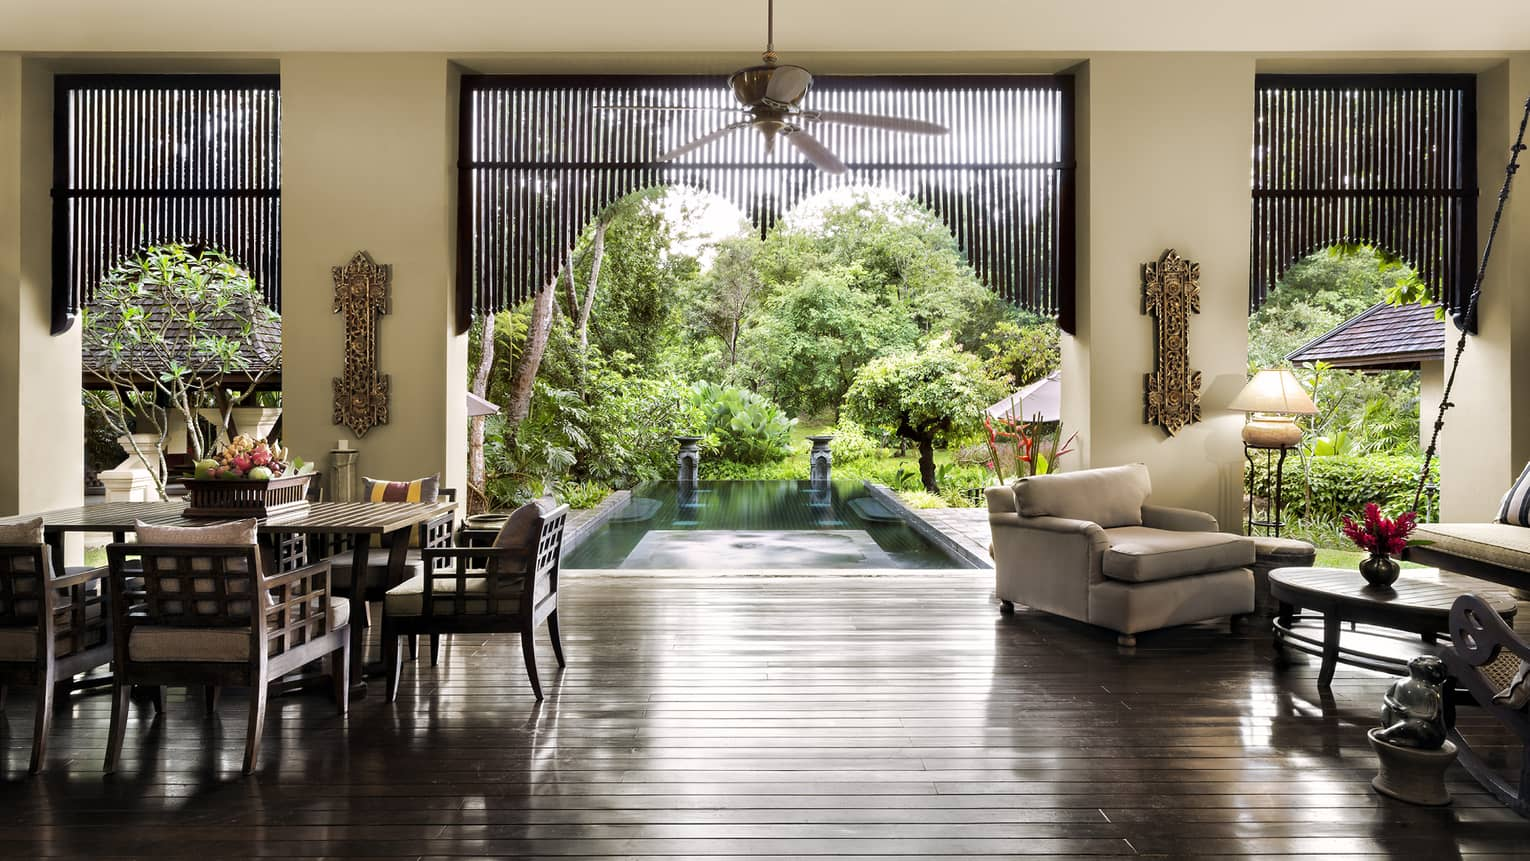 Residence Villa open air living dining room, gleaming wood floors, open wall to pool